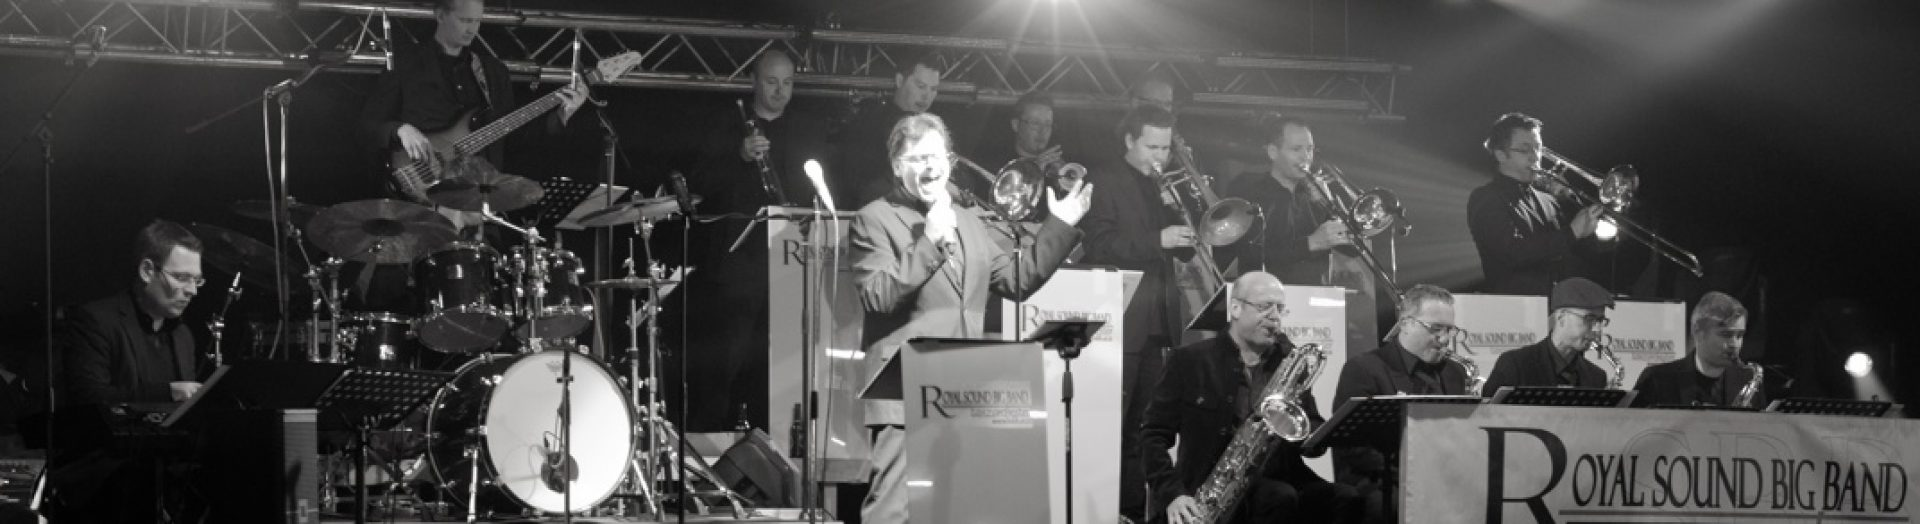 Royal Sound Big Band